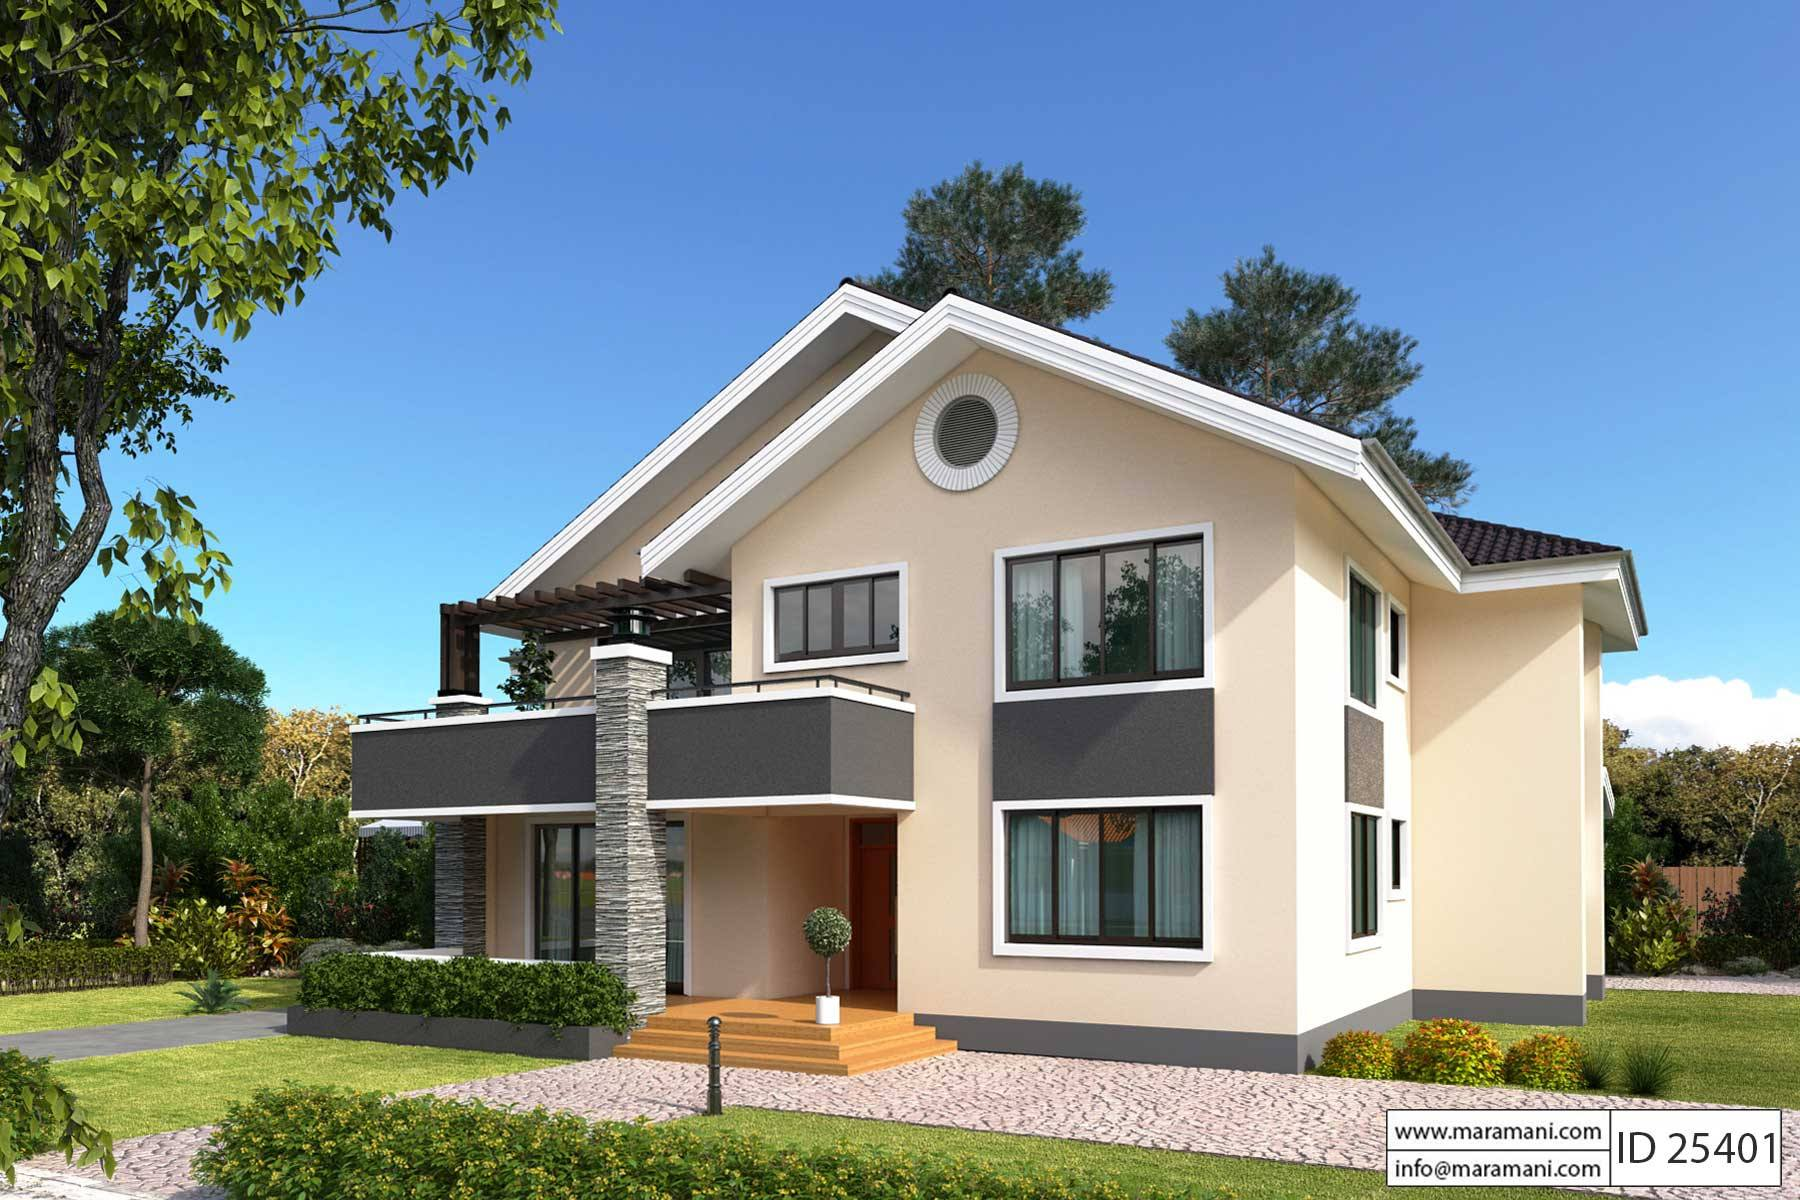 5 bedroom house plan id 25401 floor plans by maramani for 5 bedrooms